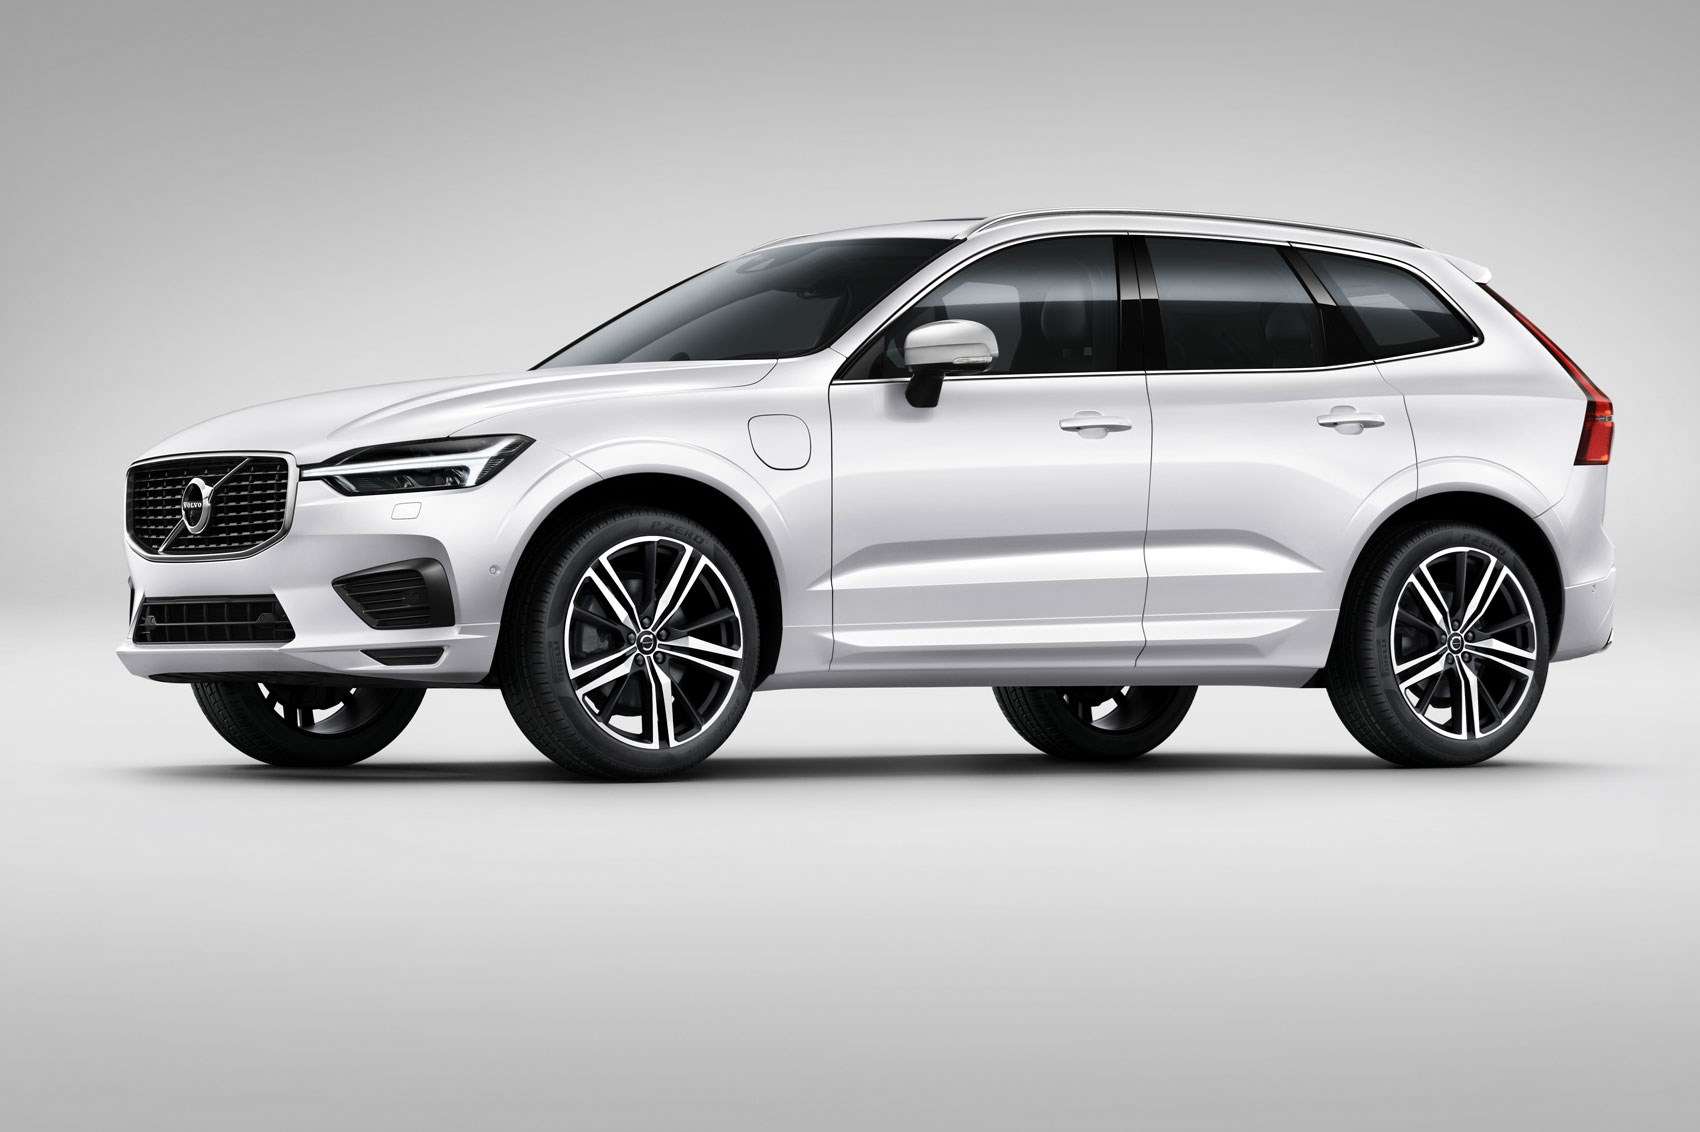 new volvo xc60 unveiled at geneva 2017 by car magazine. Black Bedroom Furniture Sets. Home Design Ideas